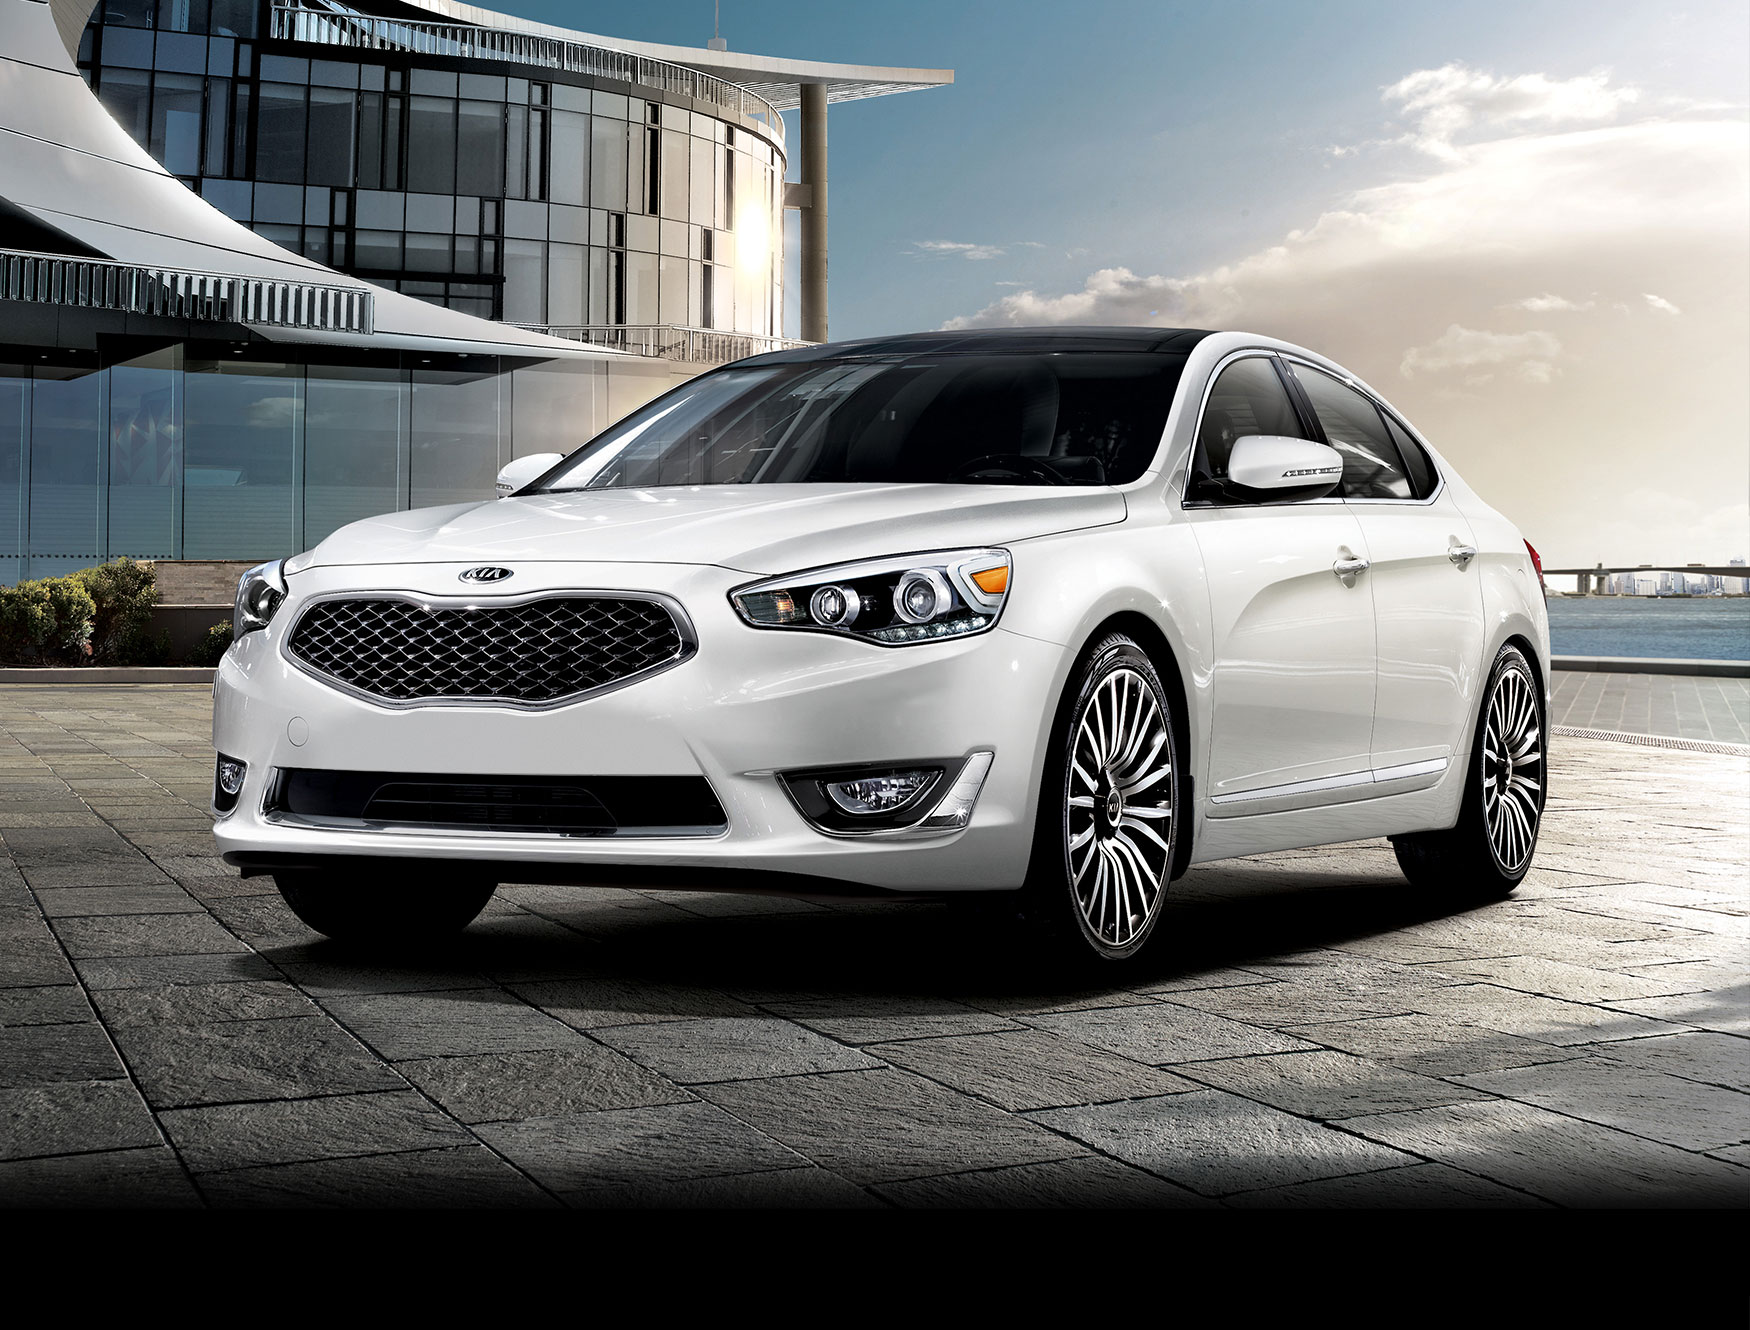 2014 kia cadenza review and price the news articles reviews comments prices of cars and. Black Bedroom Furniture Sets. Home Design Ideas